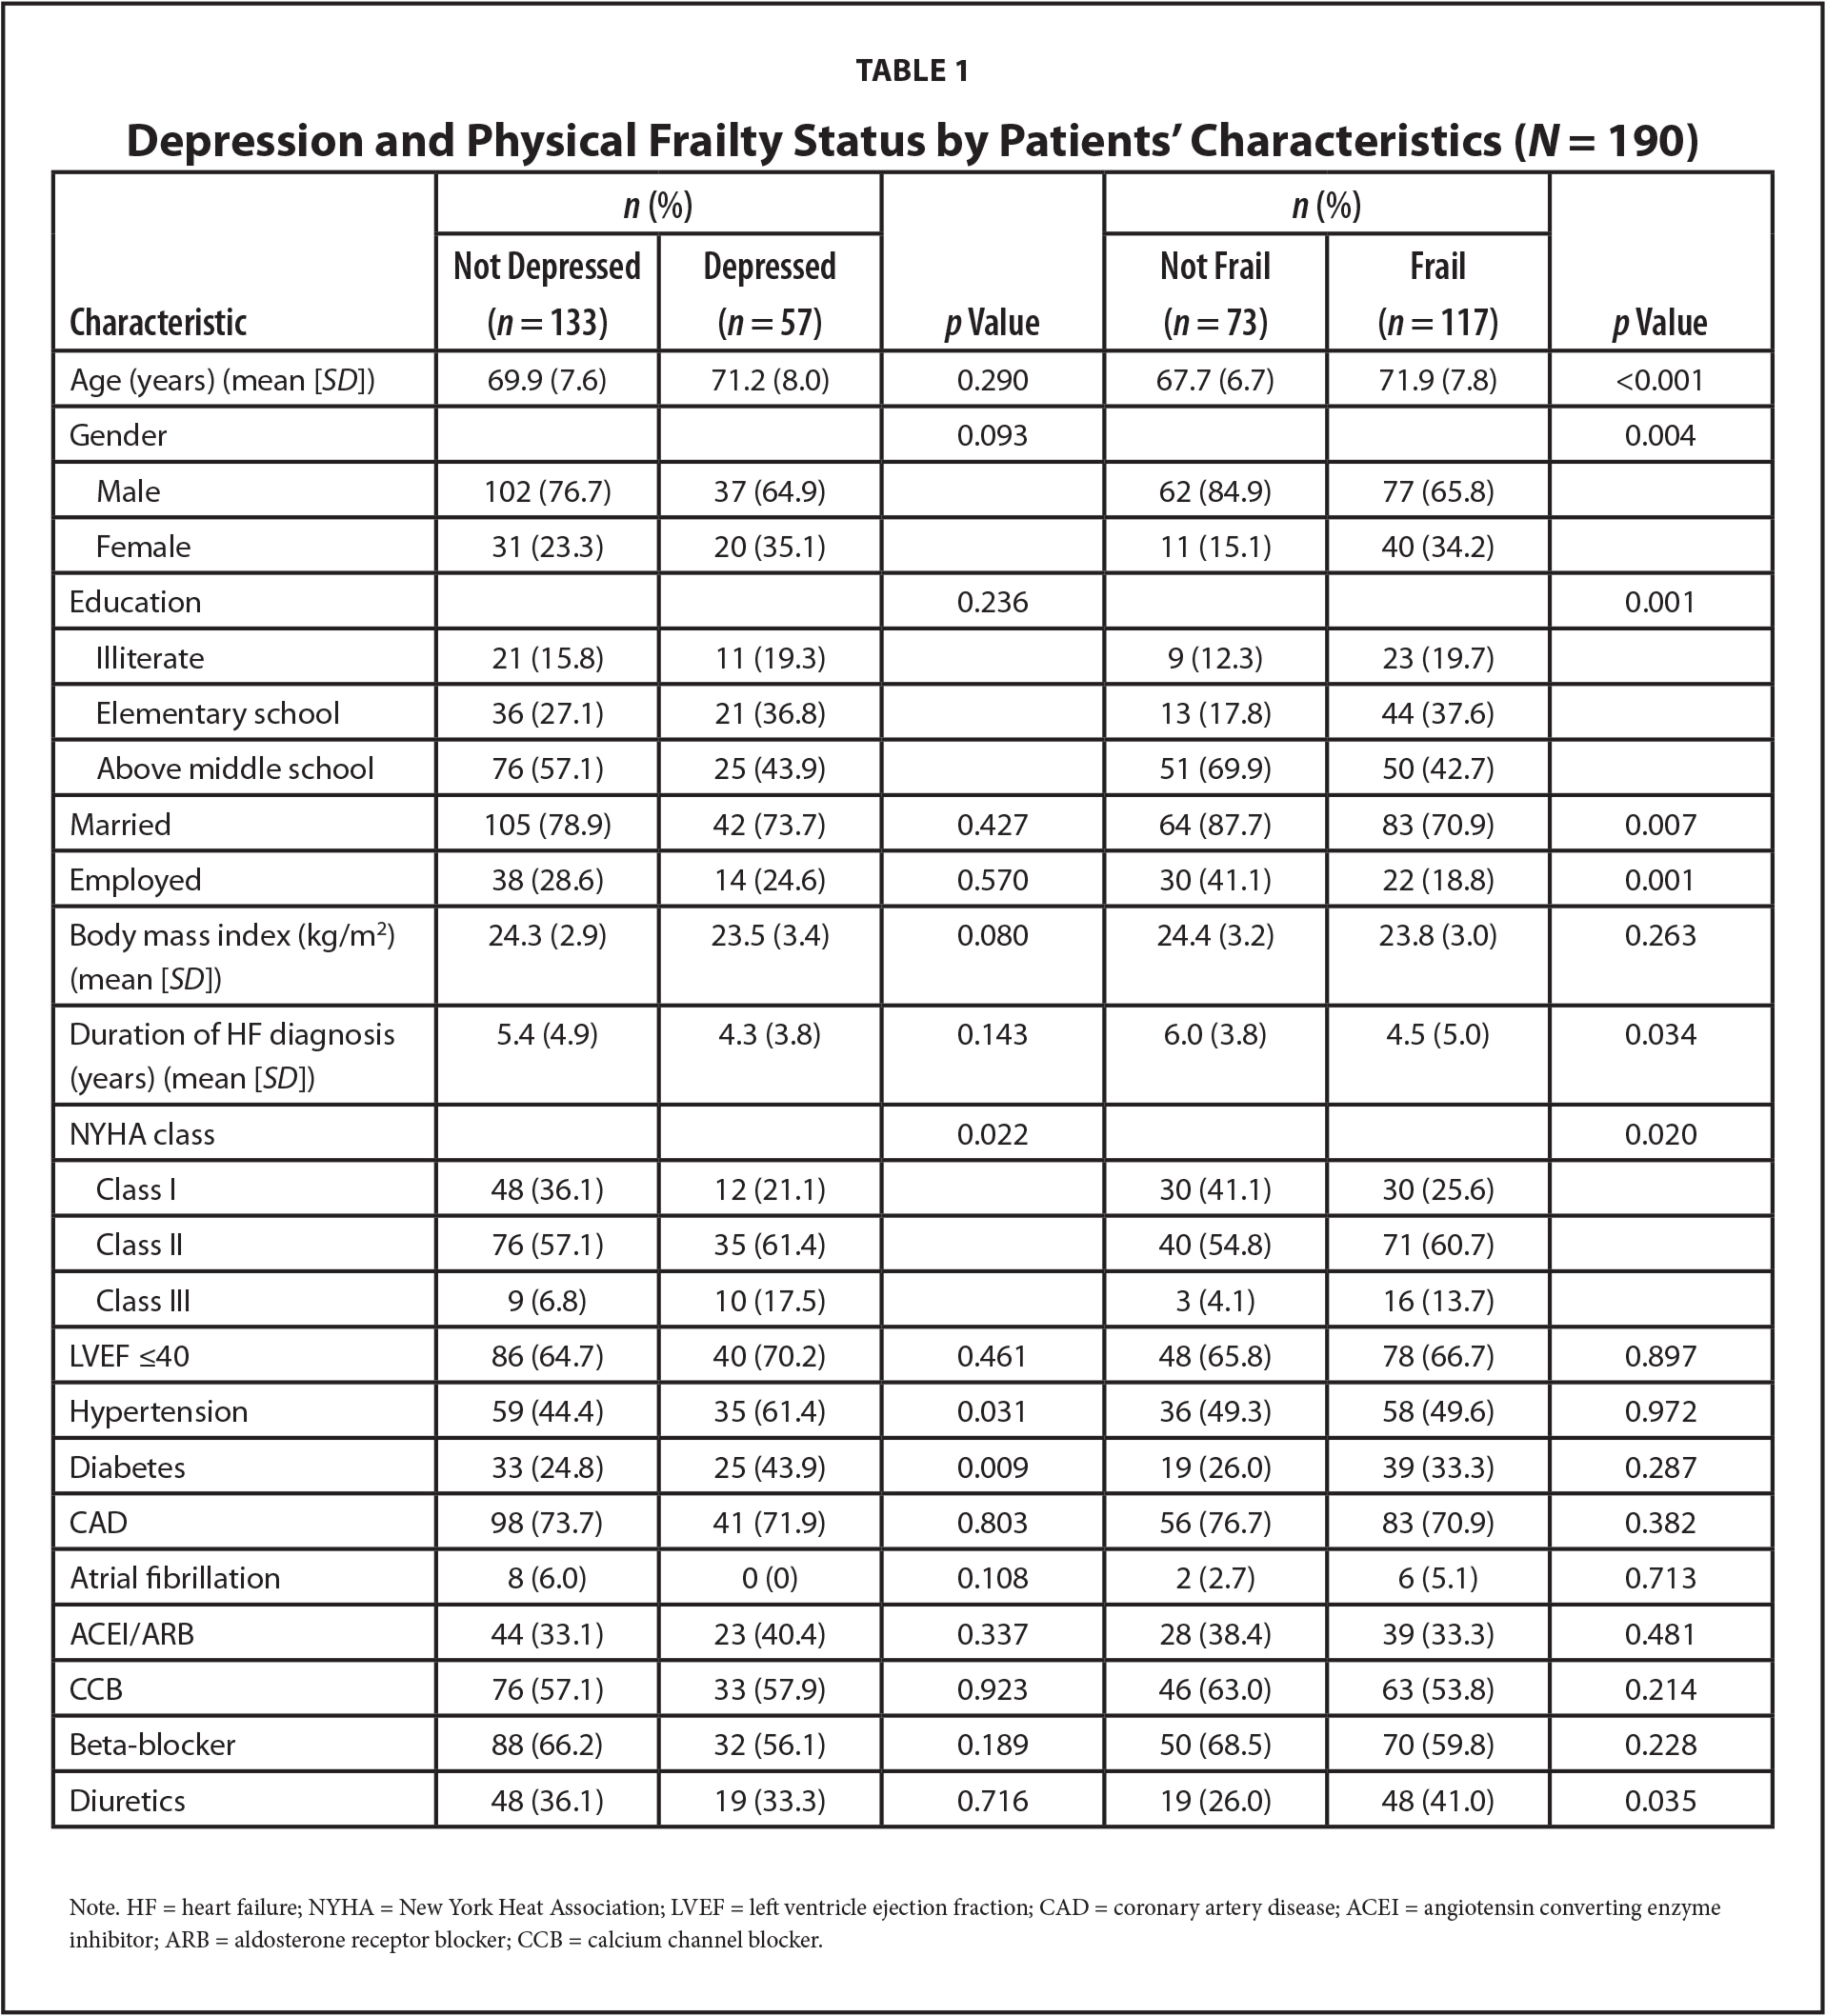 Depression and Physical Frailty Status by Patients' Characteristics (N = 190)